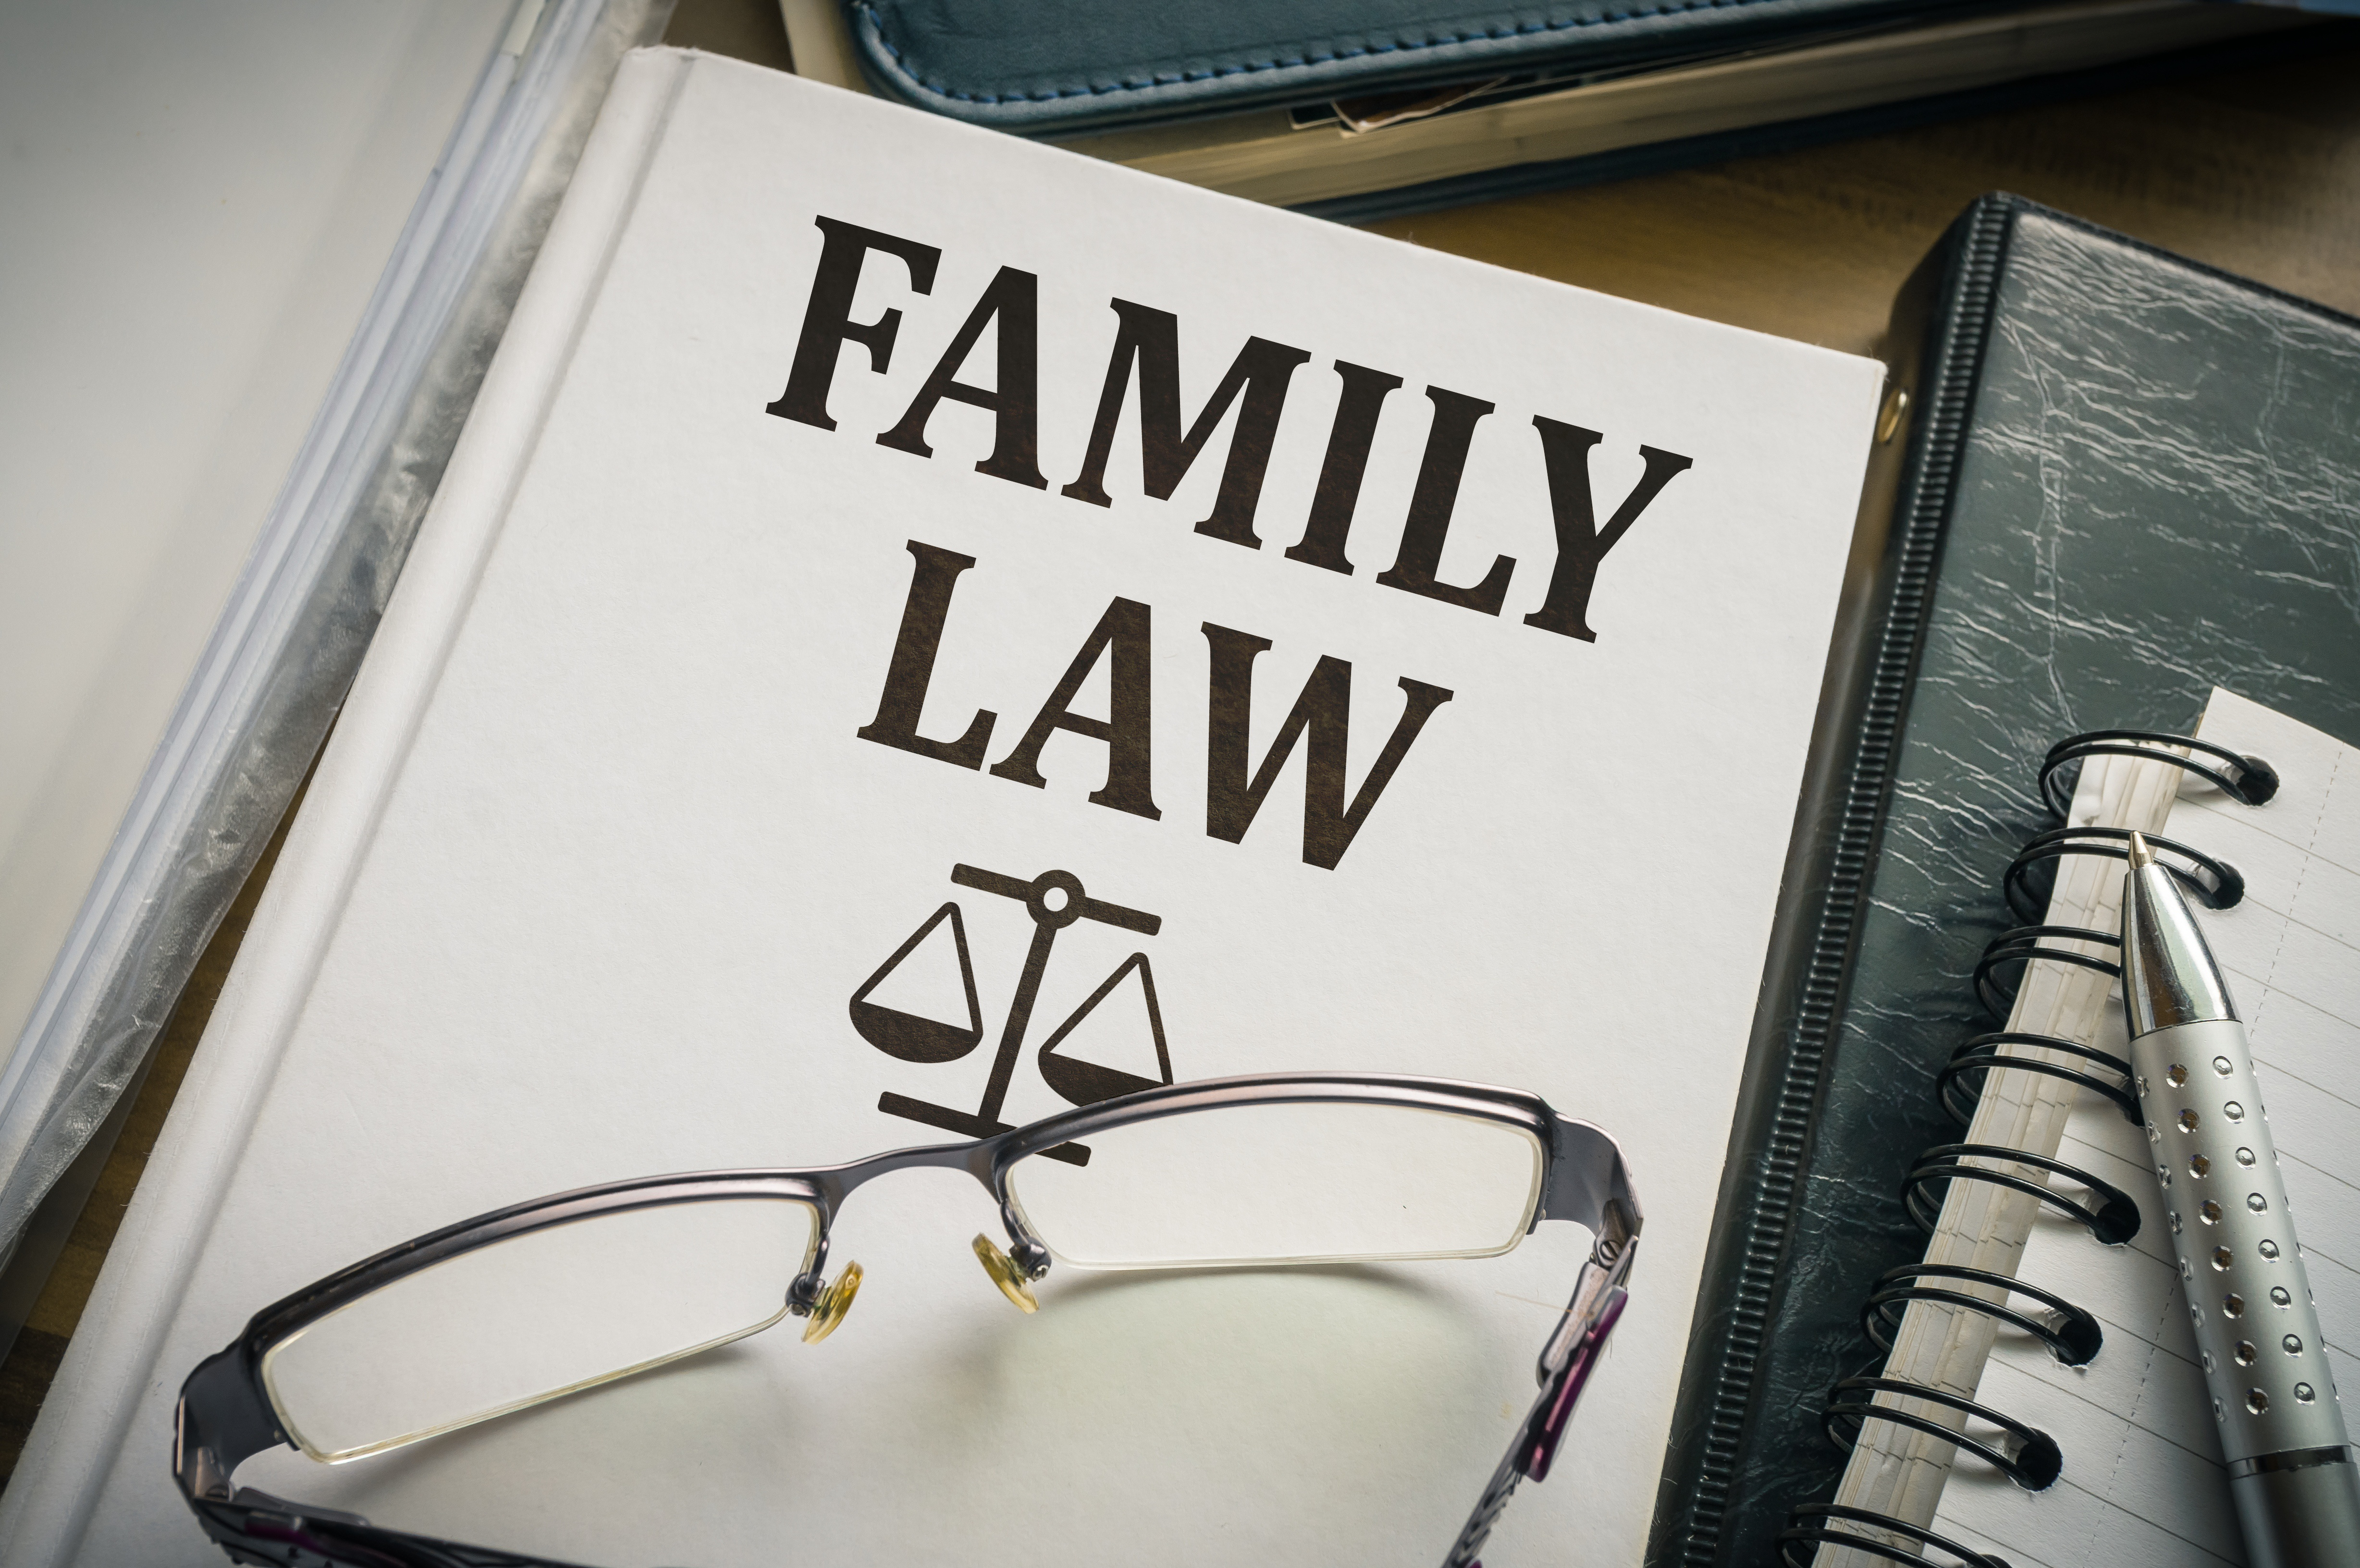 El paso tx archives huerta law firm a family lawyer can help el paso families who have legal issues involving the family court system unfortunately these legal proceedings involve your most solutioingenieria Images